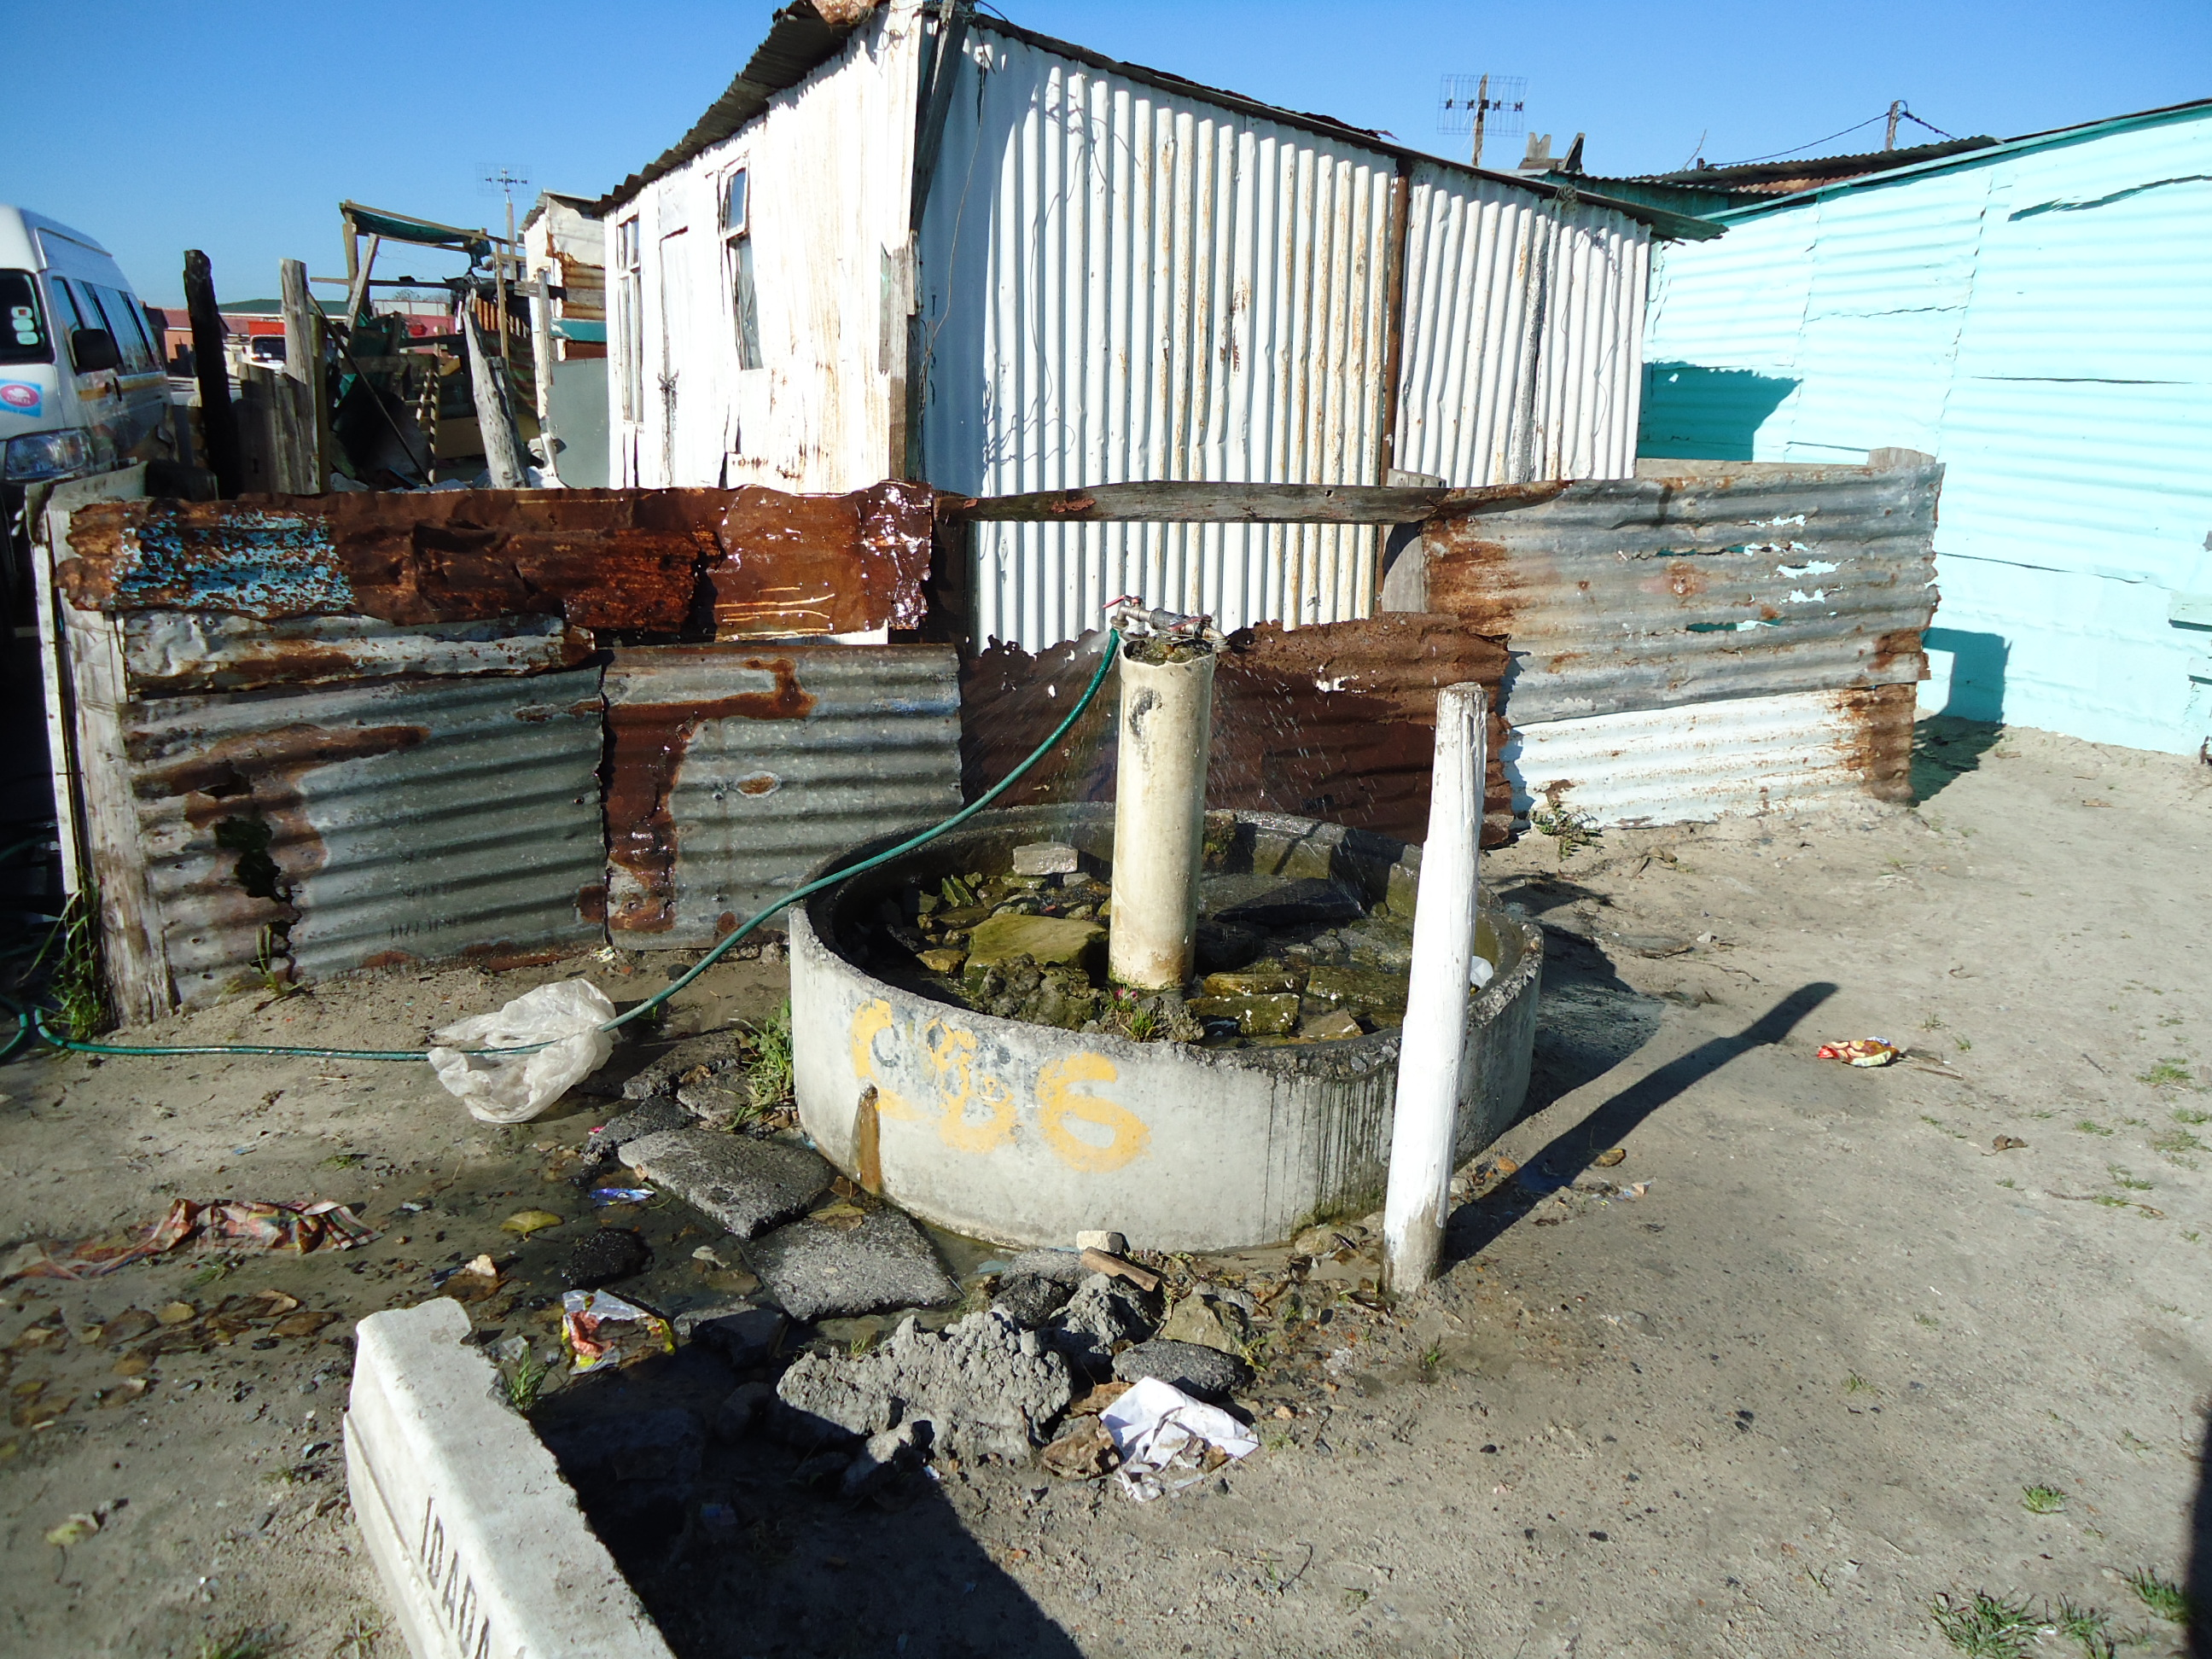 exposed pipe out of the ground as Communal water tap in Cape Town slum